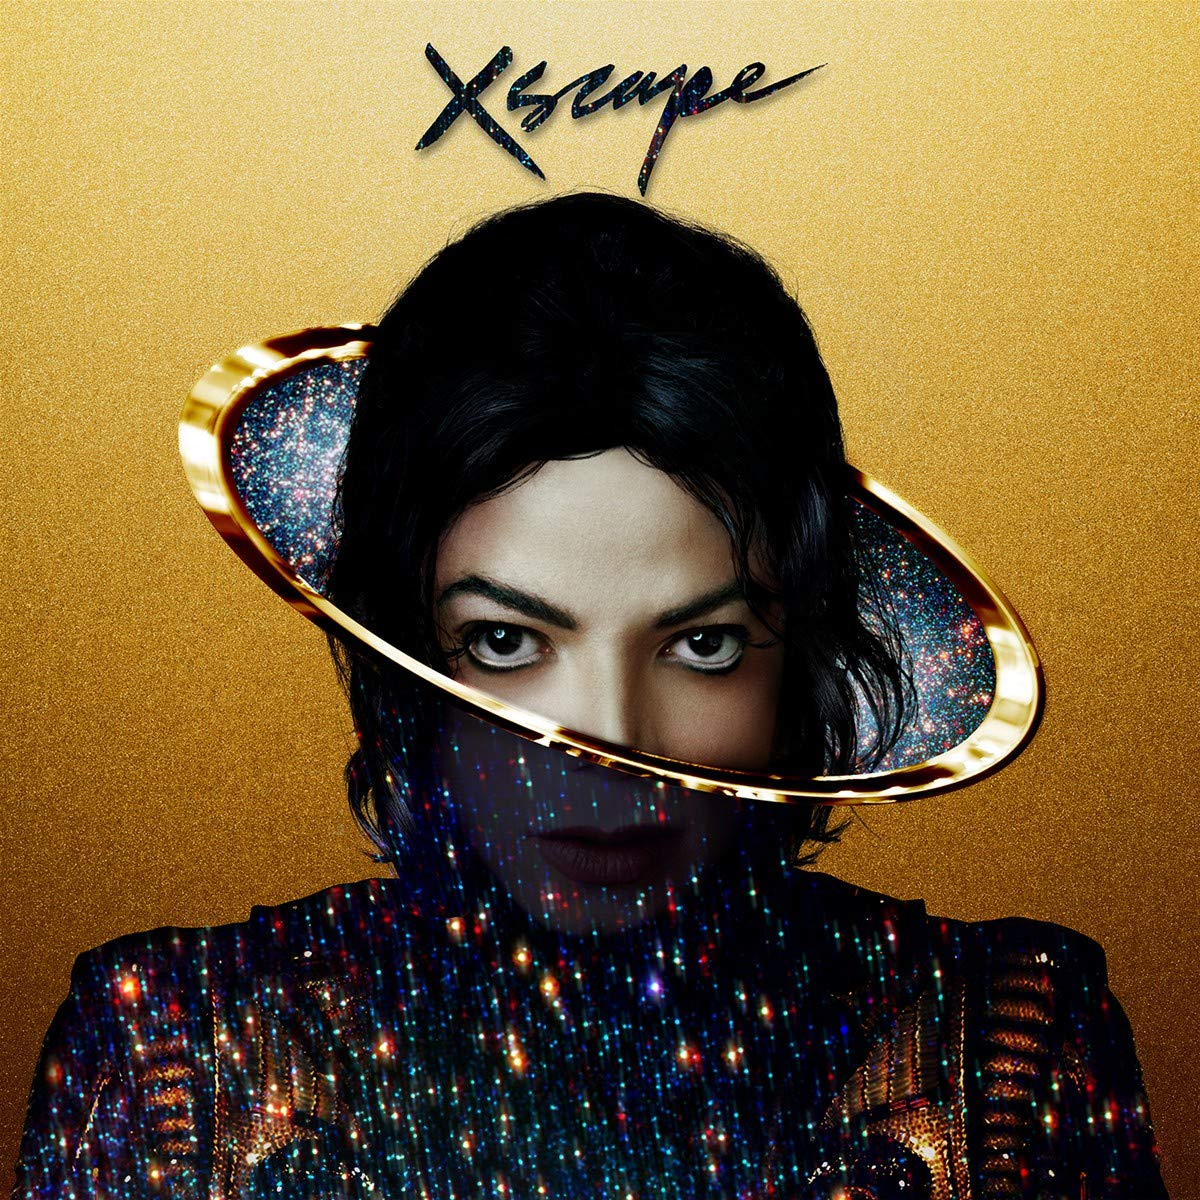 Michhael Jackson - Xscape Deluxe Edition Import, Digipack